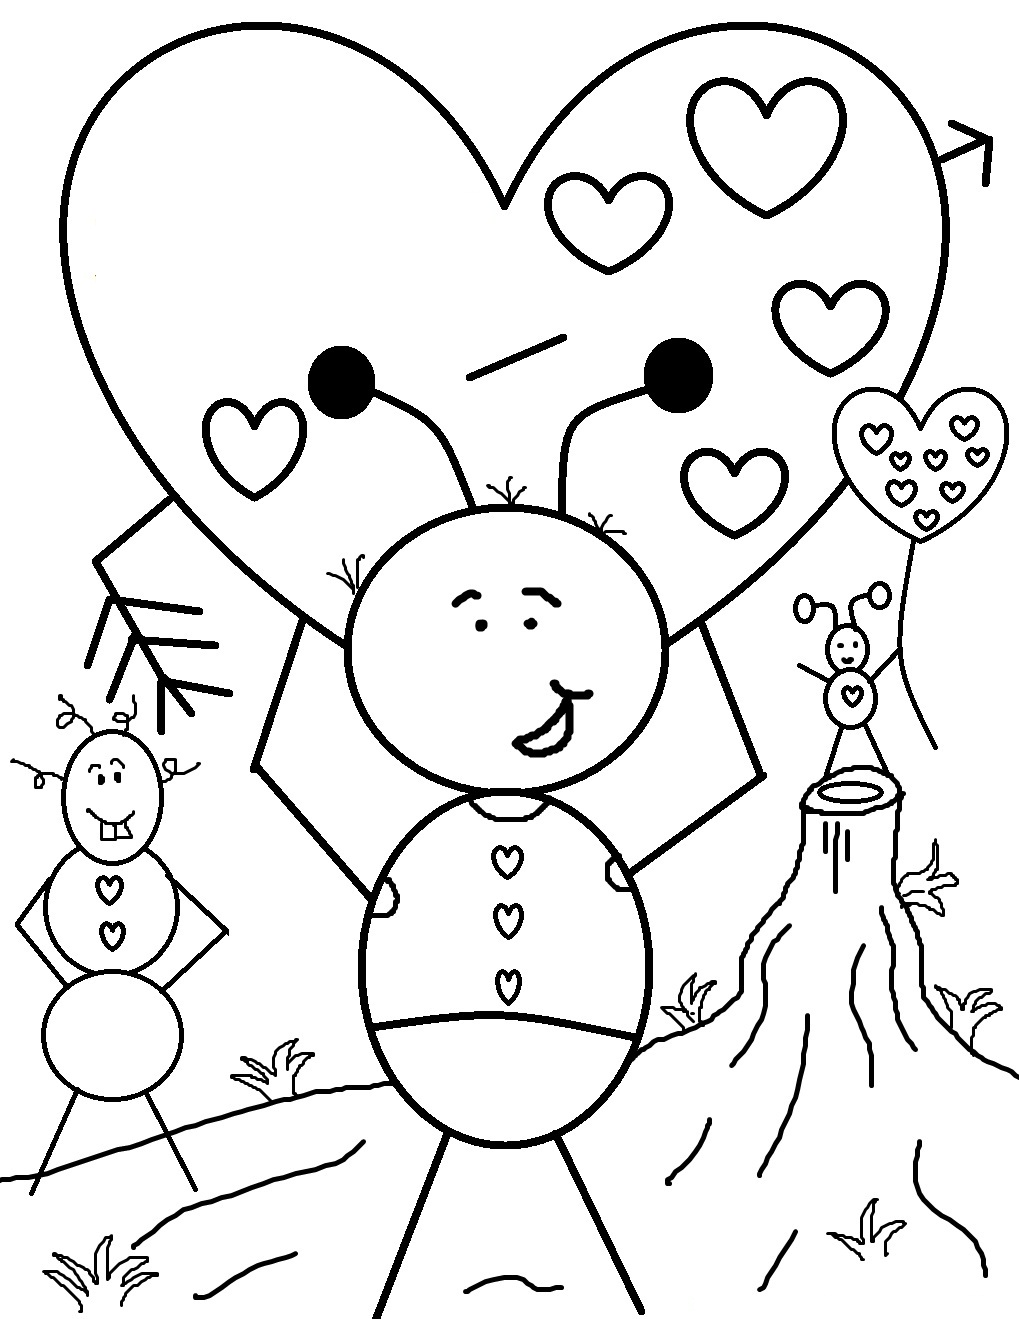 valentine online coloring pages - photo#7